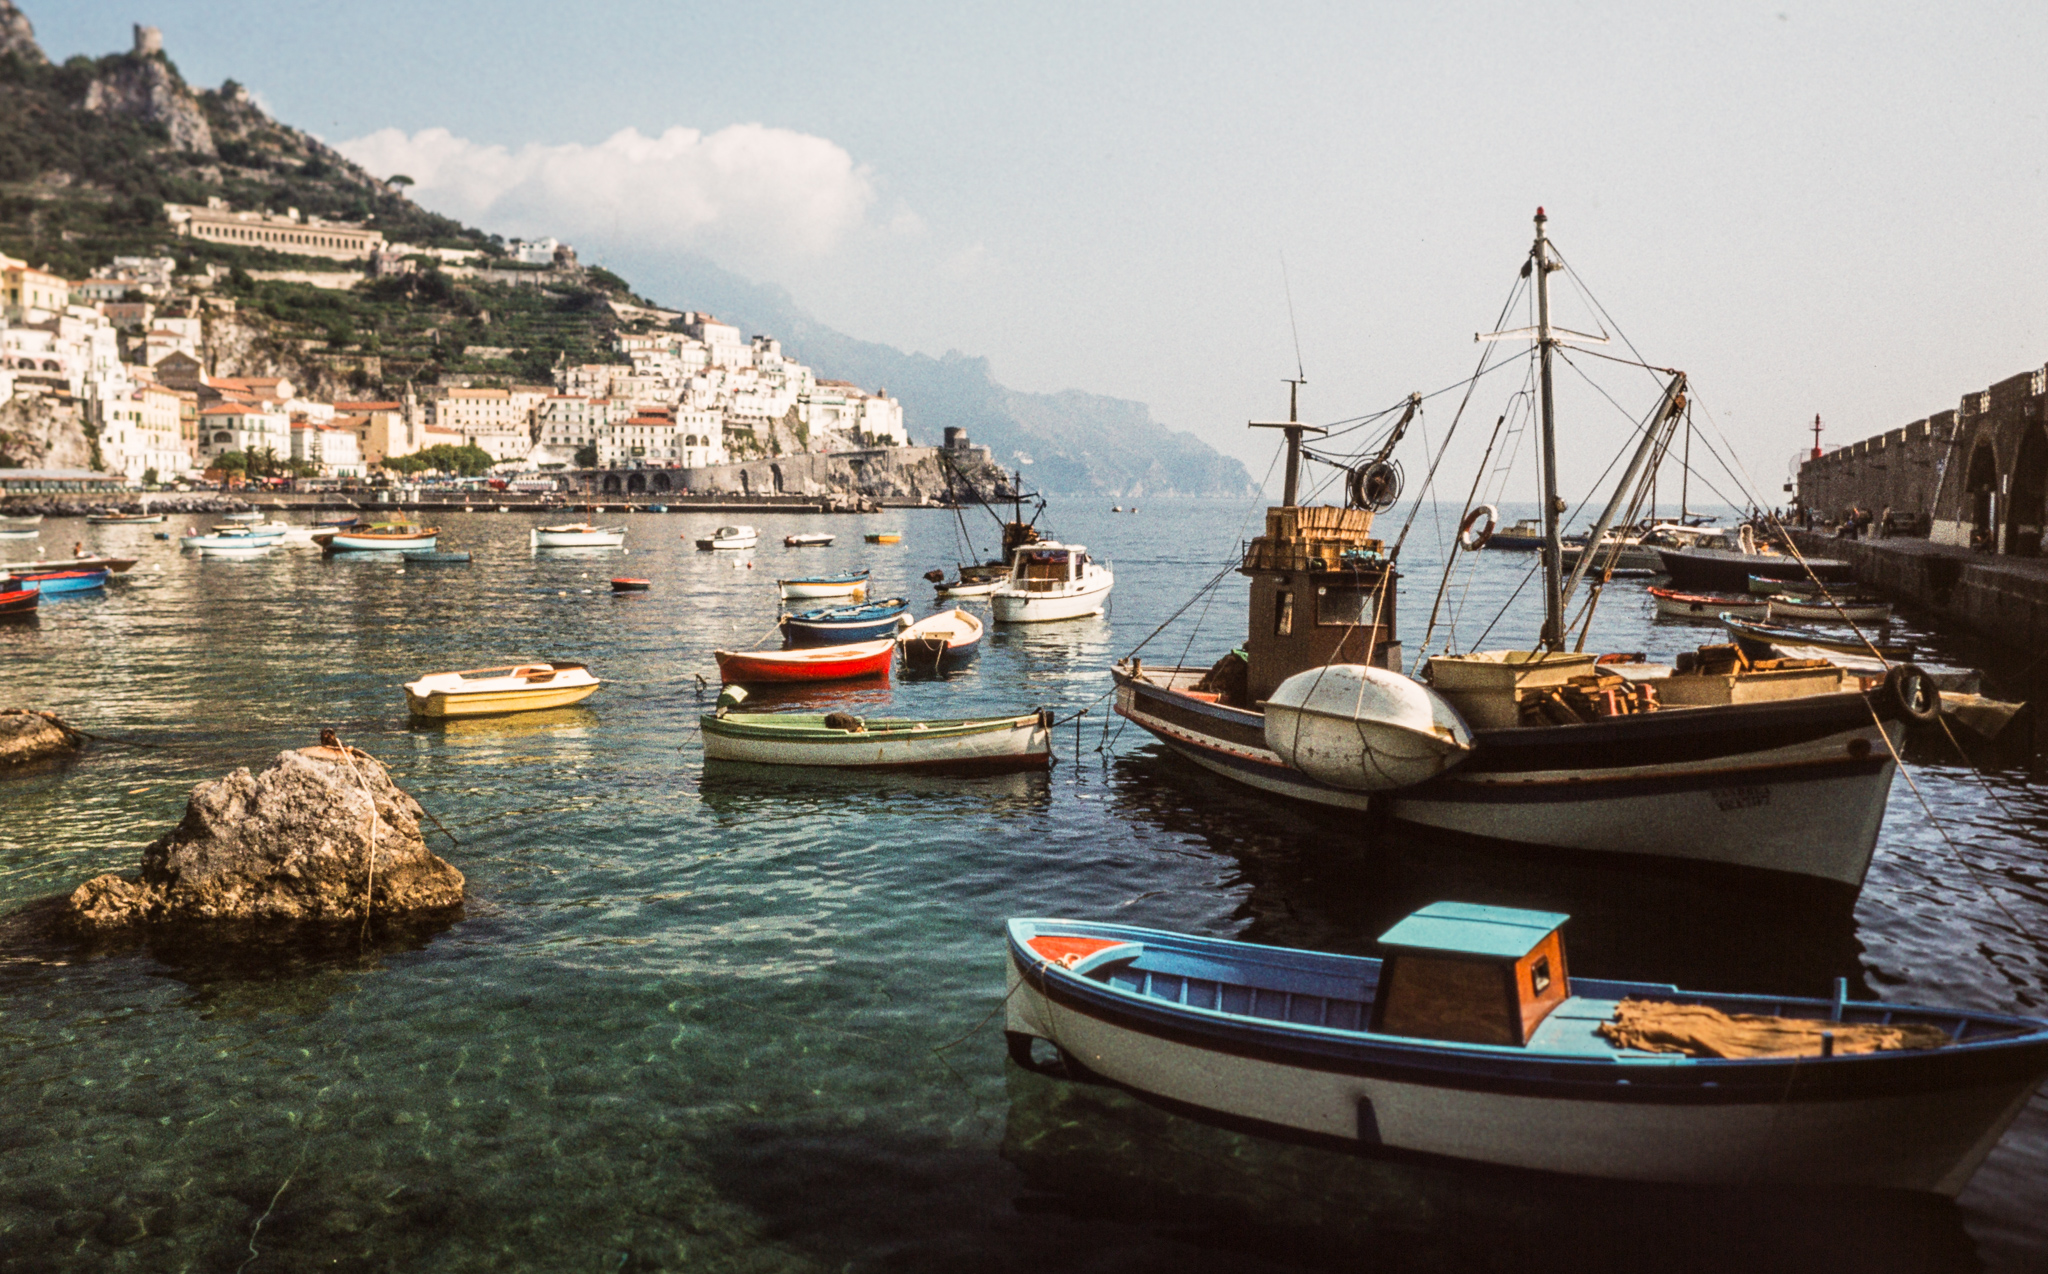 Things To Do in Amalfi Coast